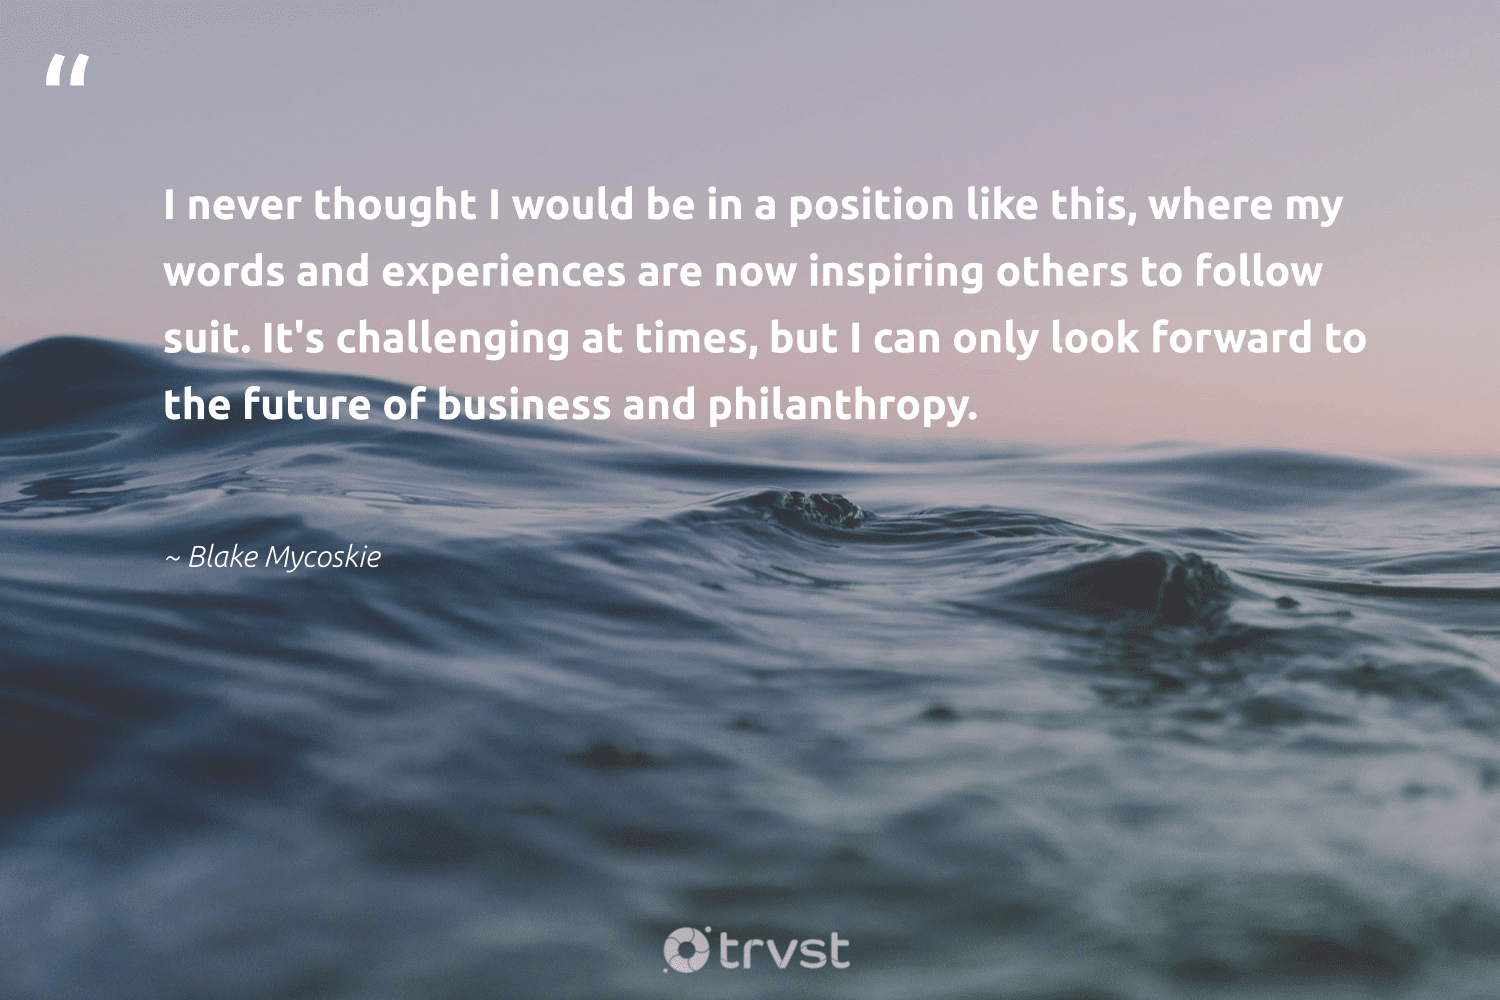 """""""I never thought I would be in a position like this, where my words and experiences are now inspiring others to follow suit. It's challenging at times, but I can only look forward to the future of business and philanthropy.""""  - Blake Mycoskie #trvst #quotes #philanthropy #philanthropic #itscooltobekind #changemakers #dosomething #togetherwecan #giveforthefuture #thinkgreen #socialimpact #impact"""